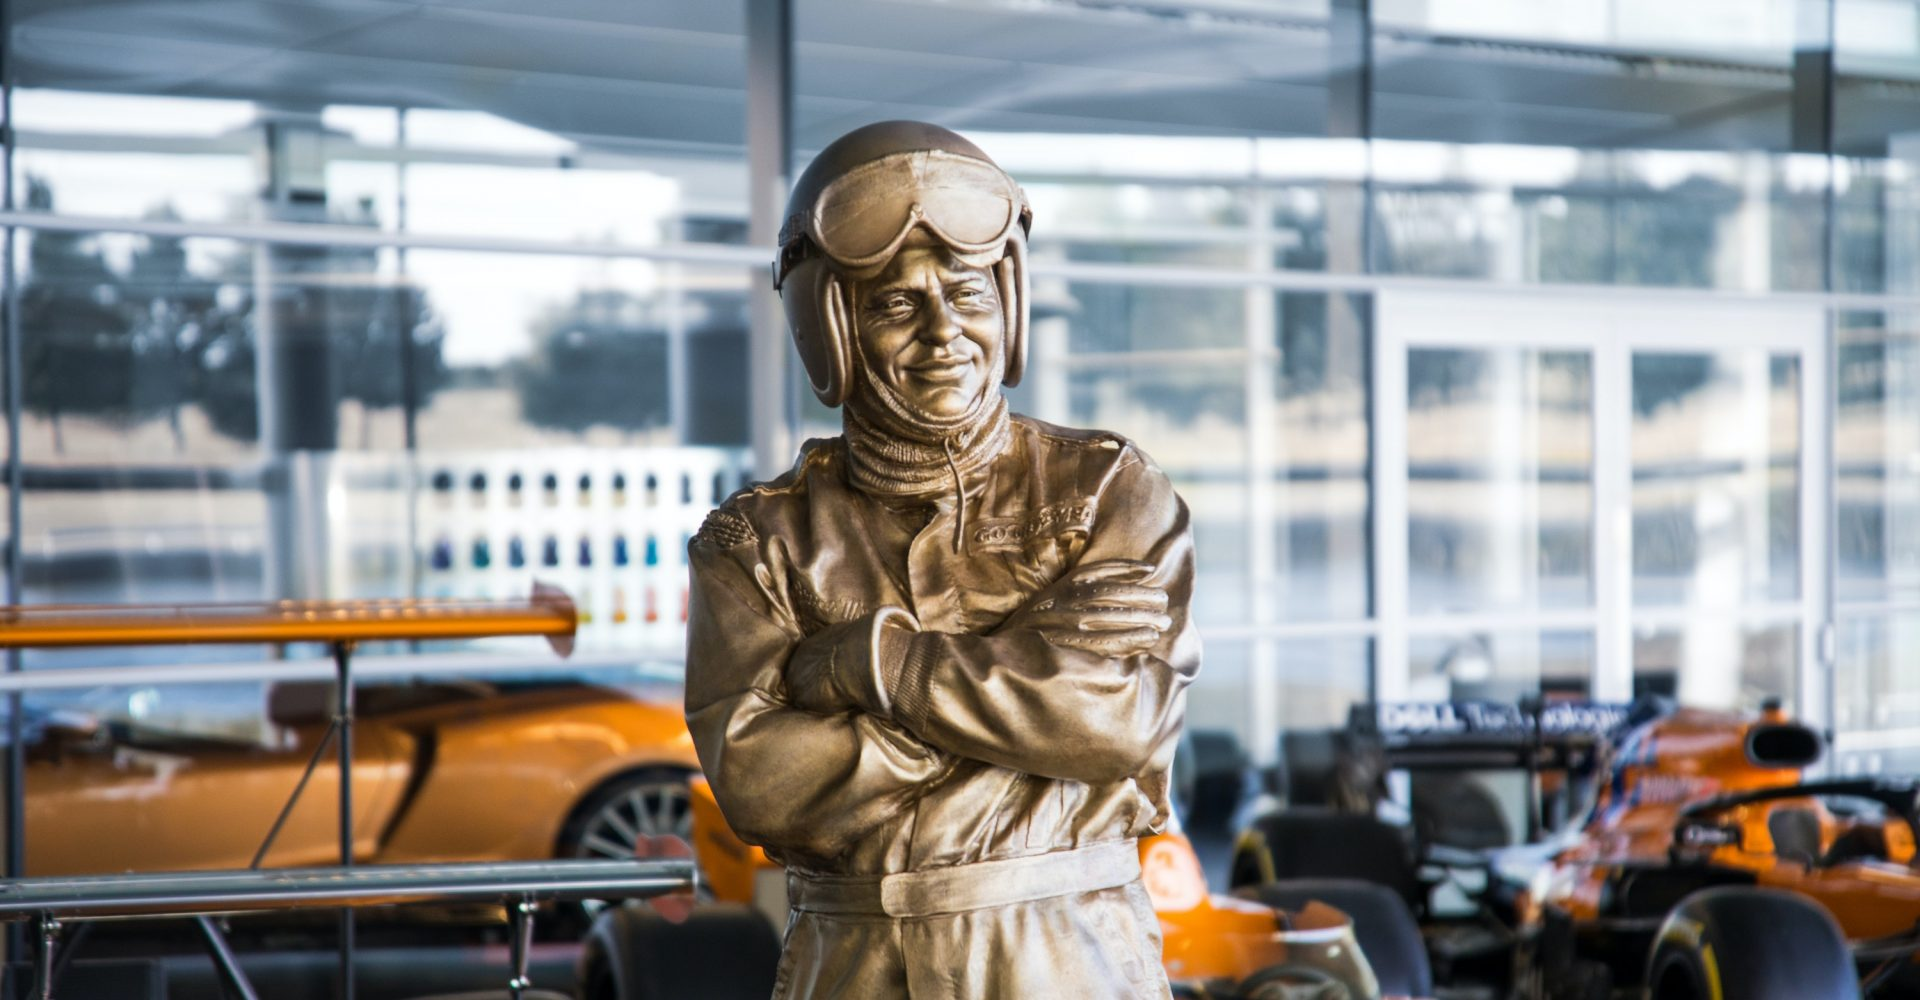 McLaren marks 50th anniversary of Bruce McLaren's death with life-sized statue